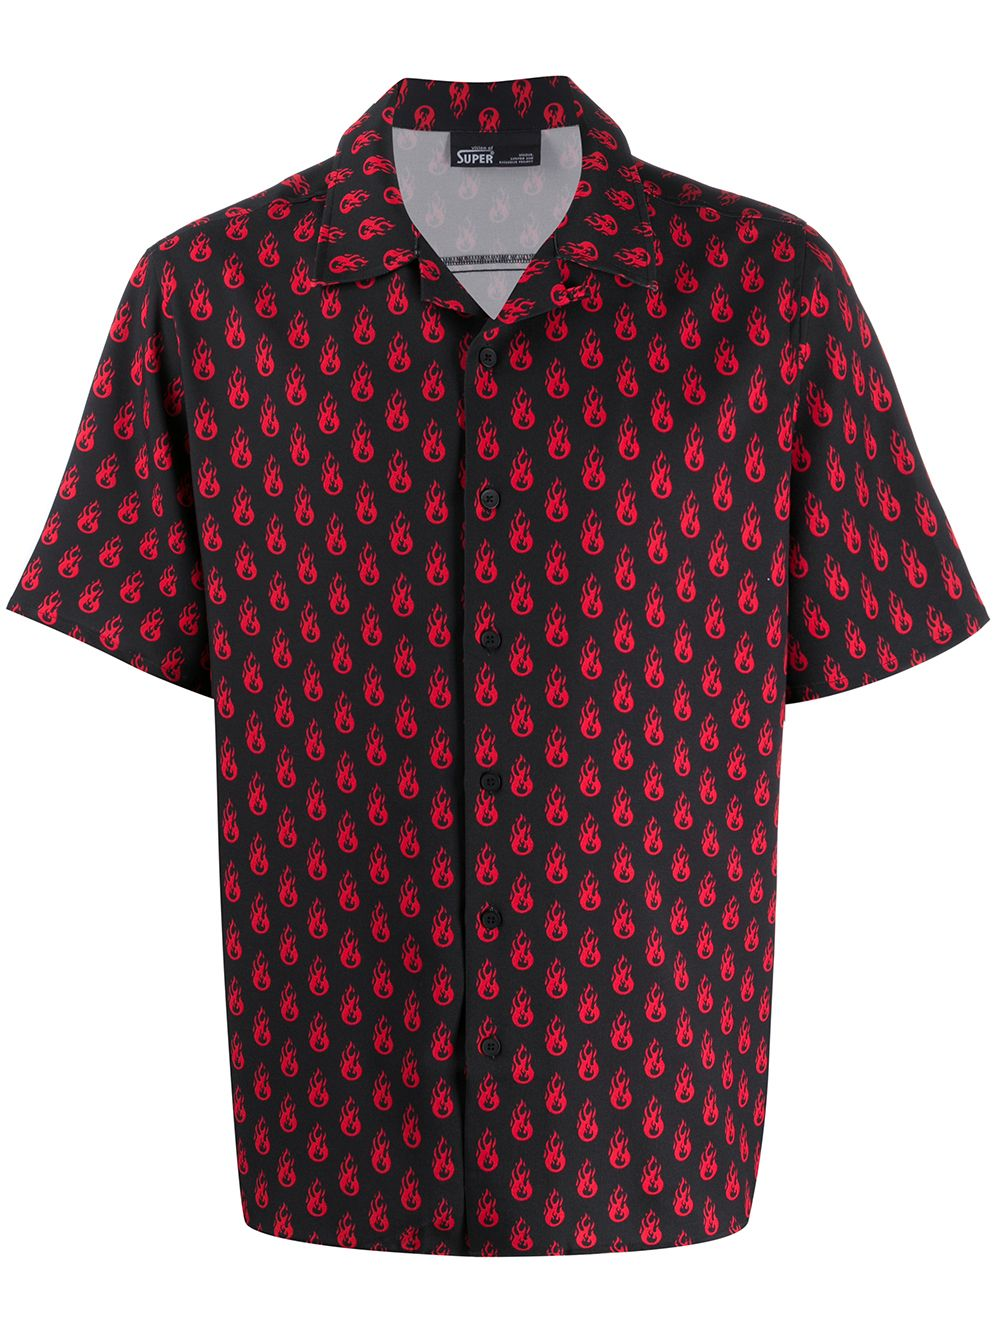 Picture of Vision Of Super   Flame-Print Shirt